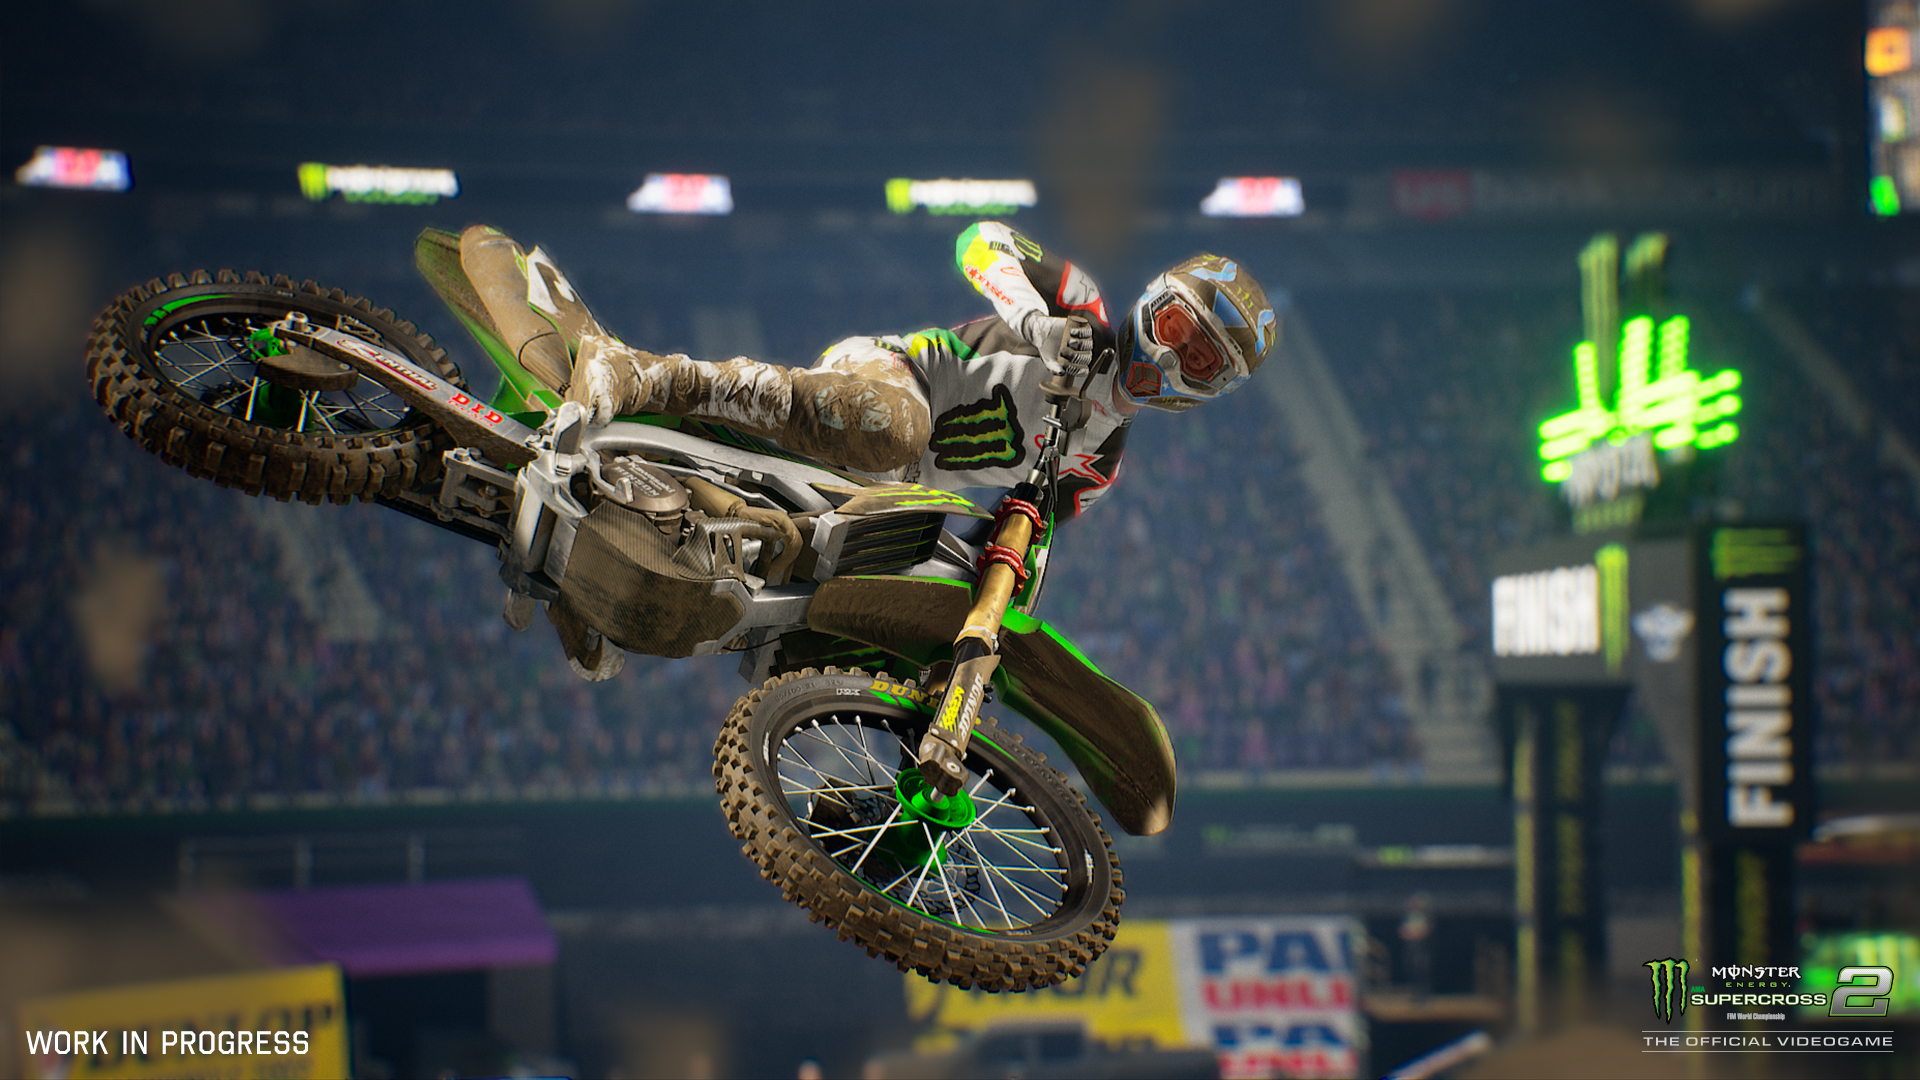 Monster Engergy Supercross - The Official Videogame 2 Screen_Annuncio_07